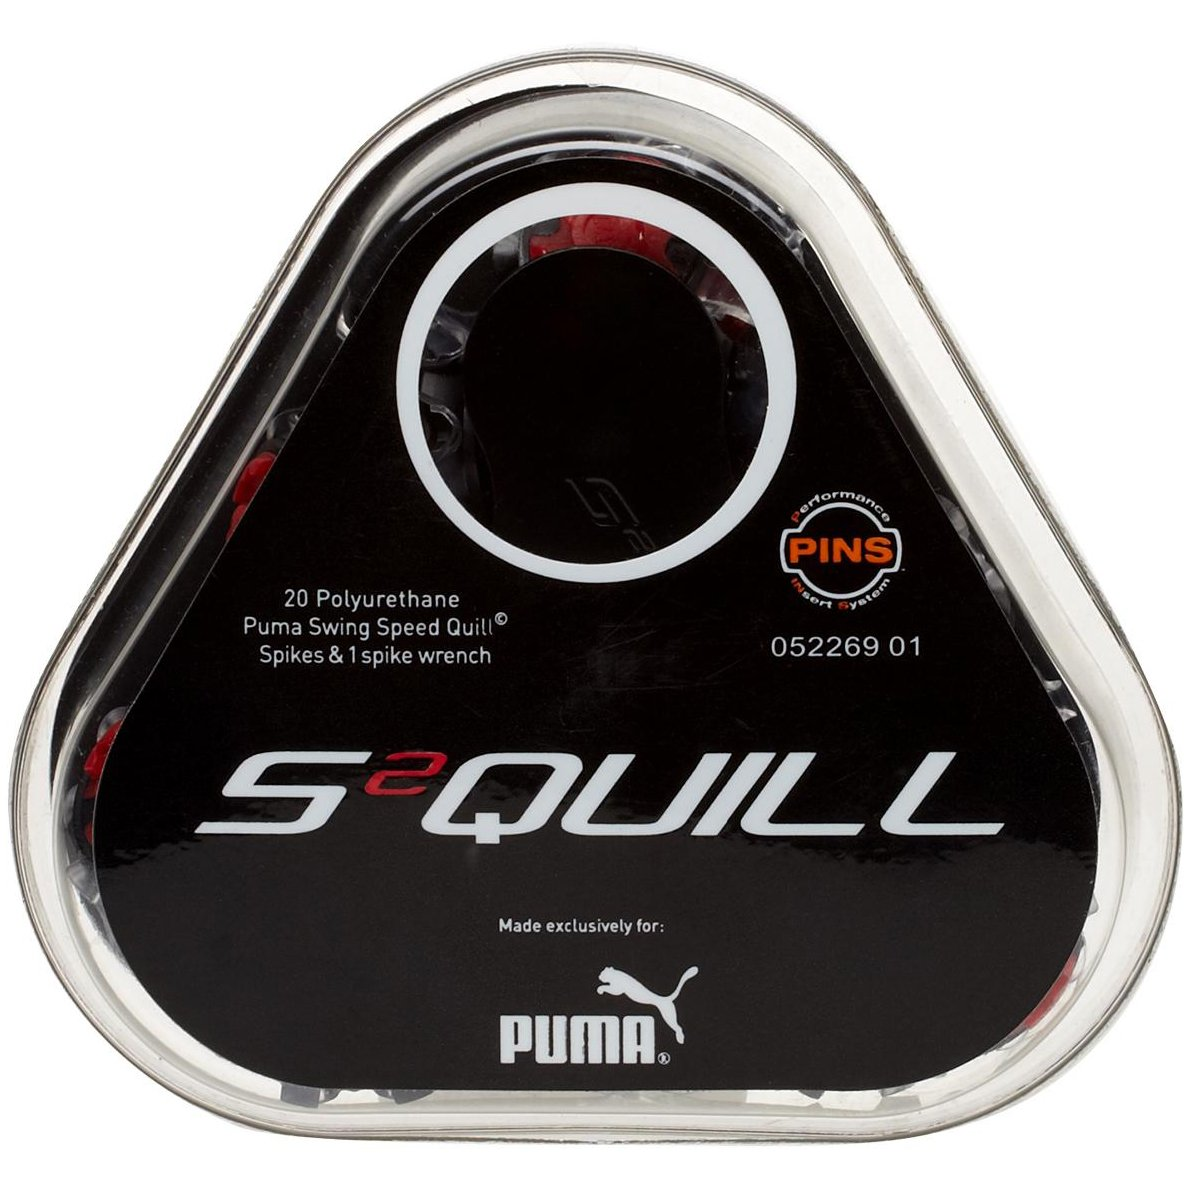 Puma S2quill Performance Replacement Spike 20 Pcs with Wrench